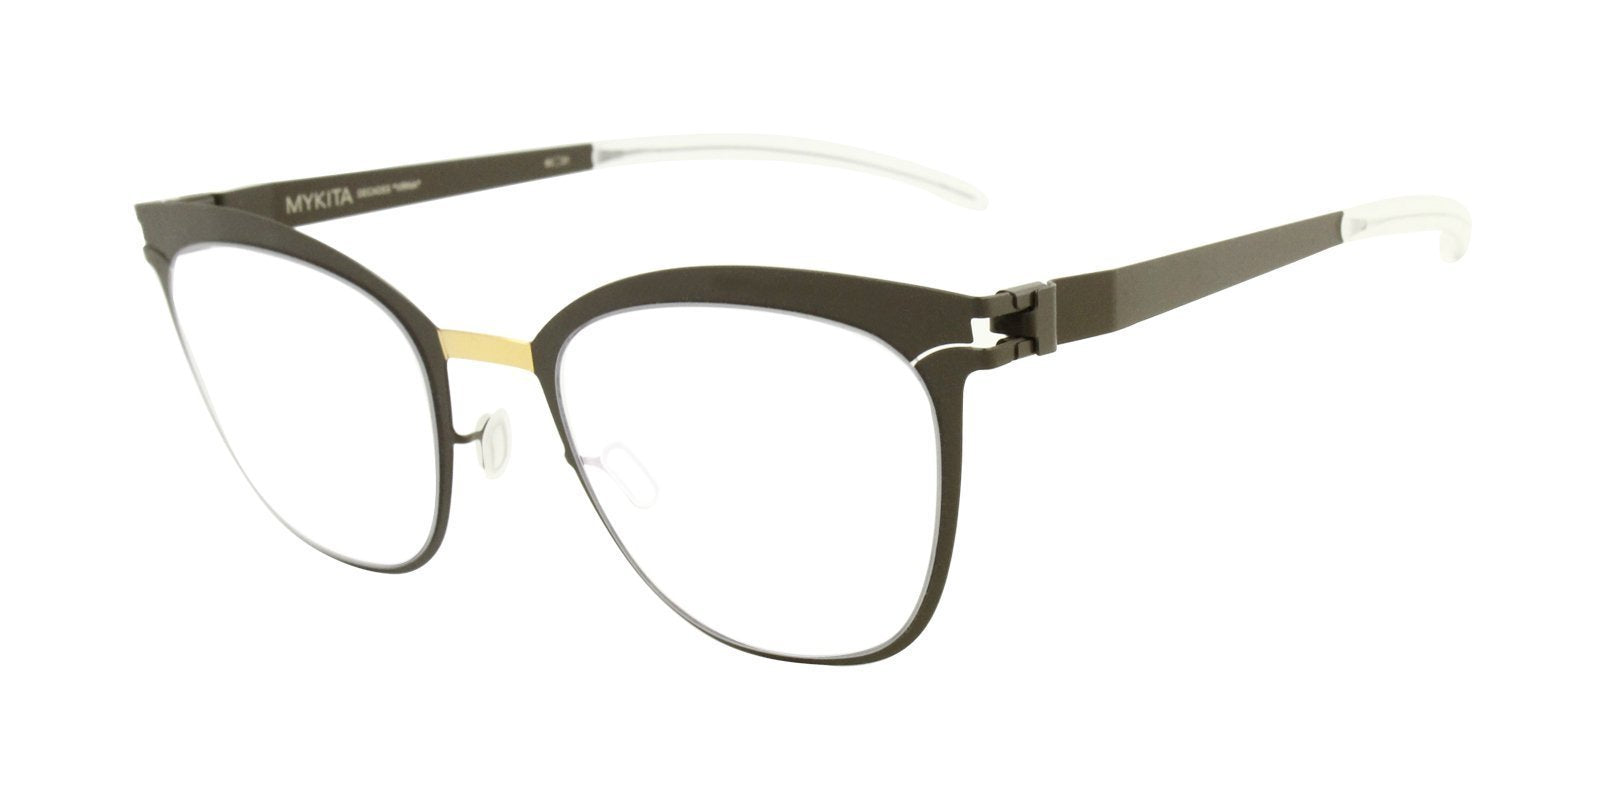 Mykita - Virna Brown Oval Women Eyeglasses - 50mm-Eyeglasses-Designer Eyes